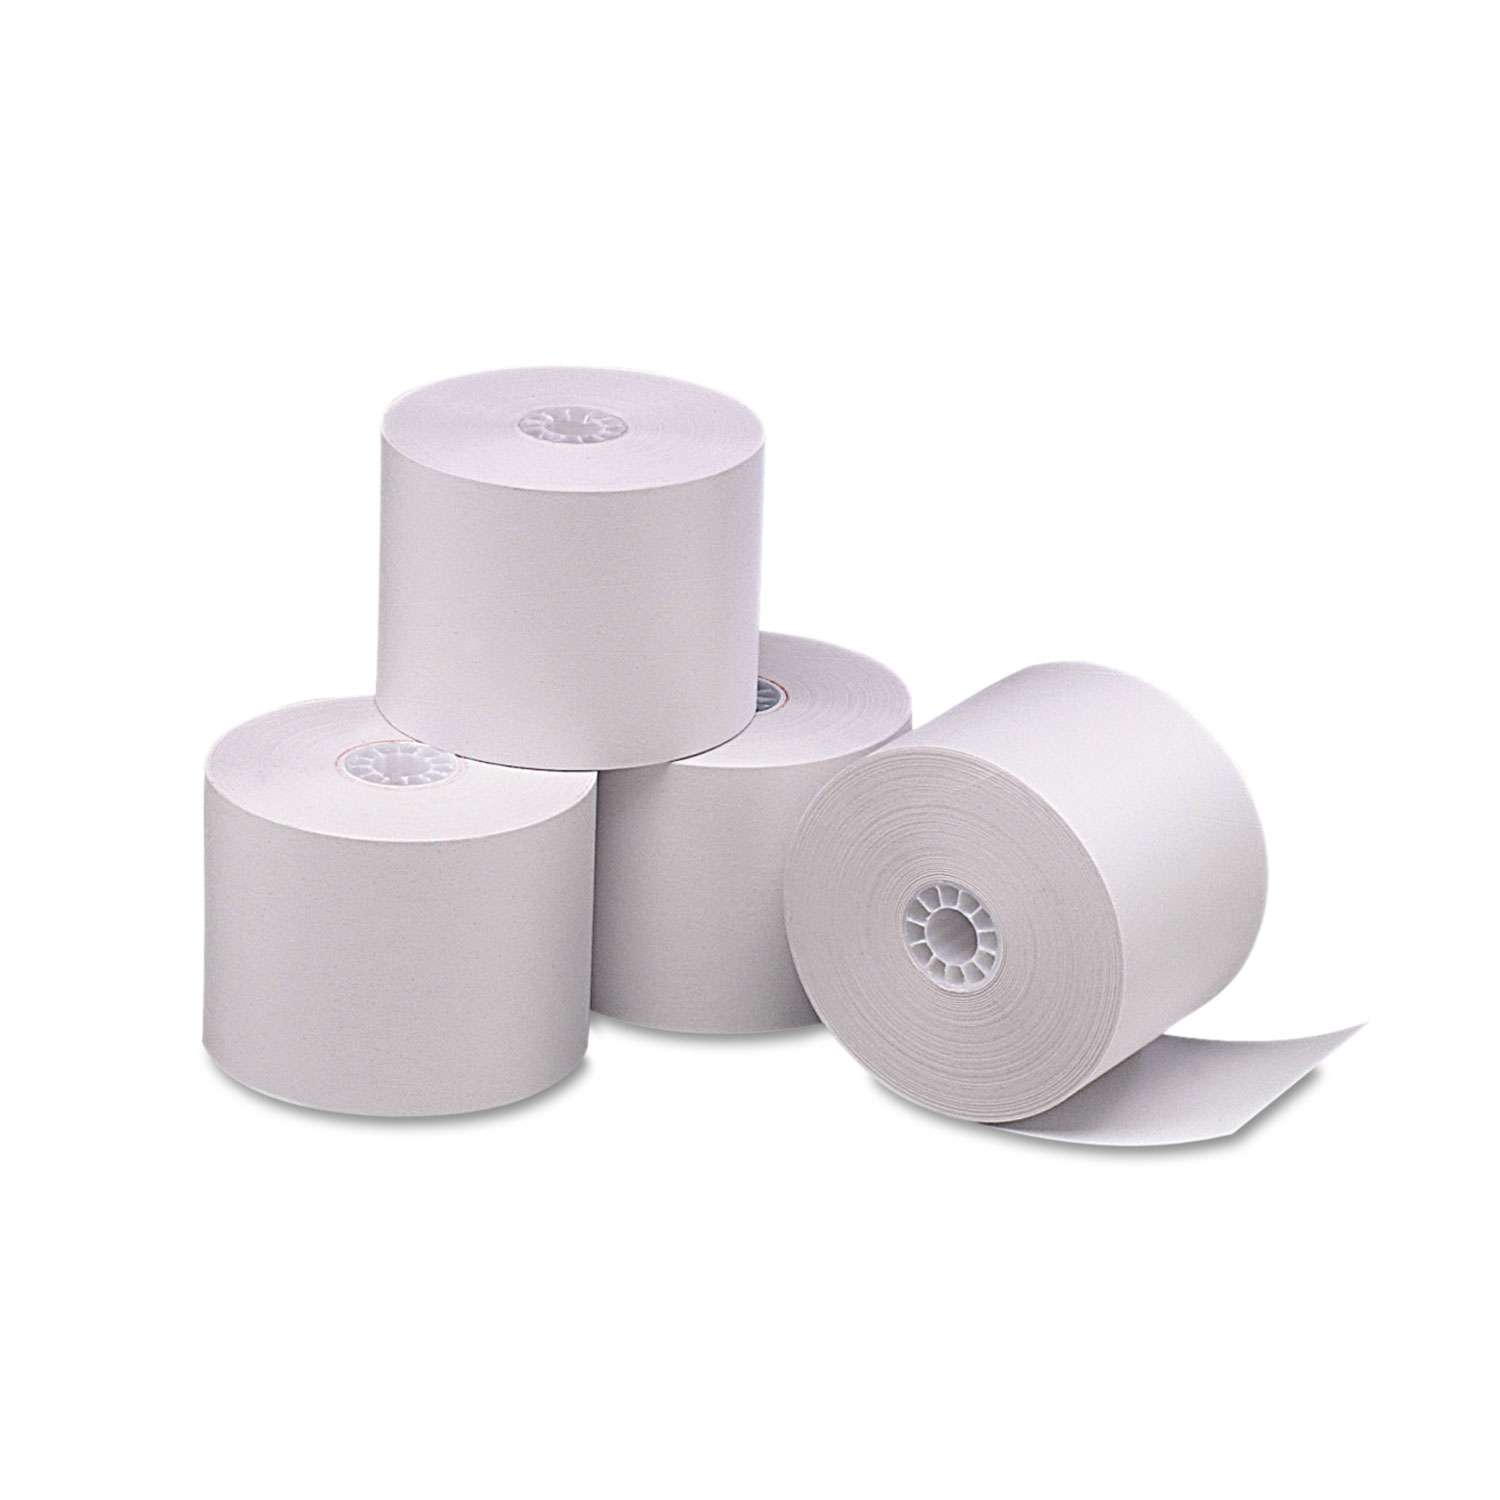 Direct Thermal Printing Thermal Paper Rolls, 2 25